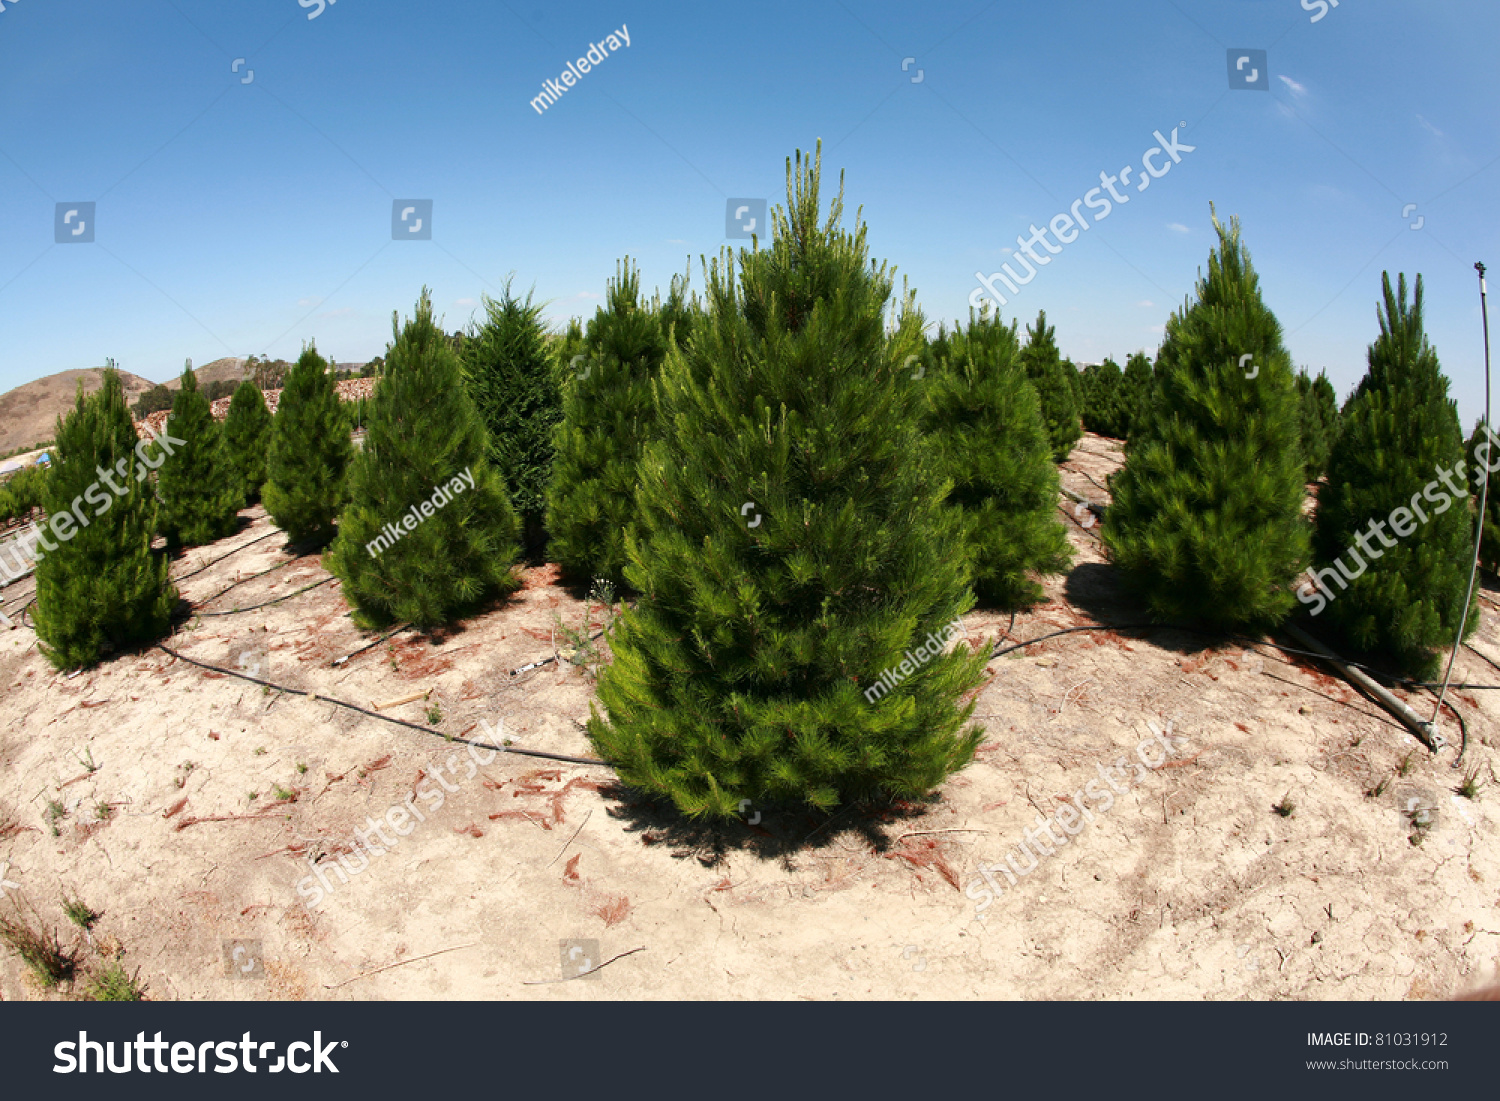 A Christmas Tree Farm In Southern California. Growing